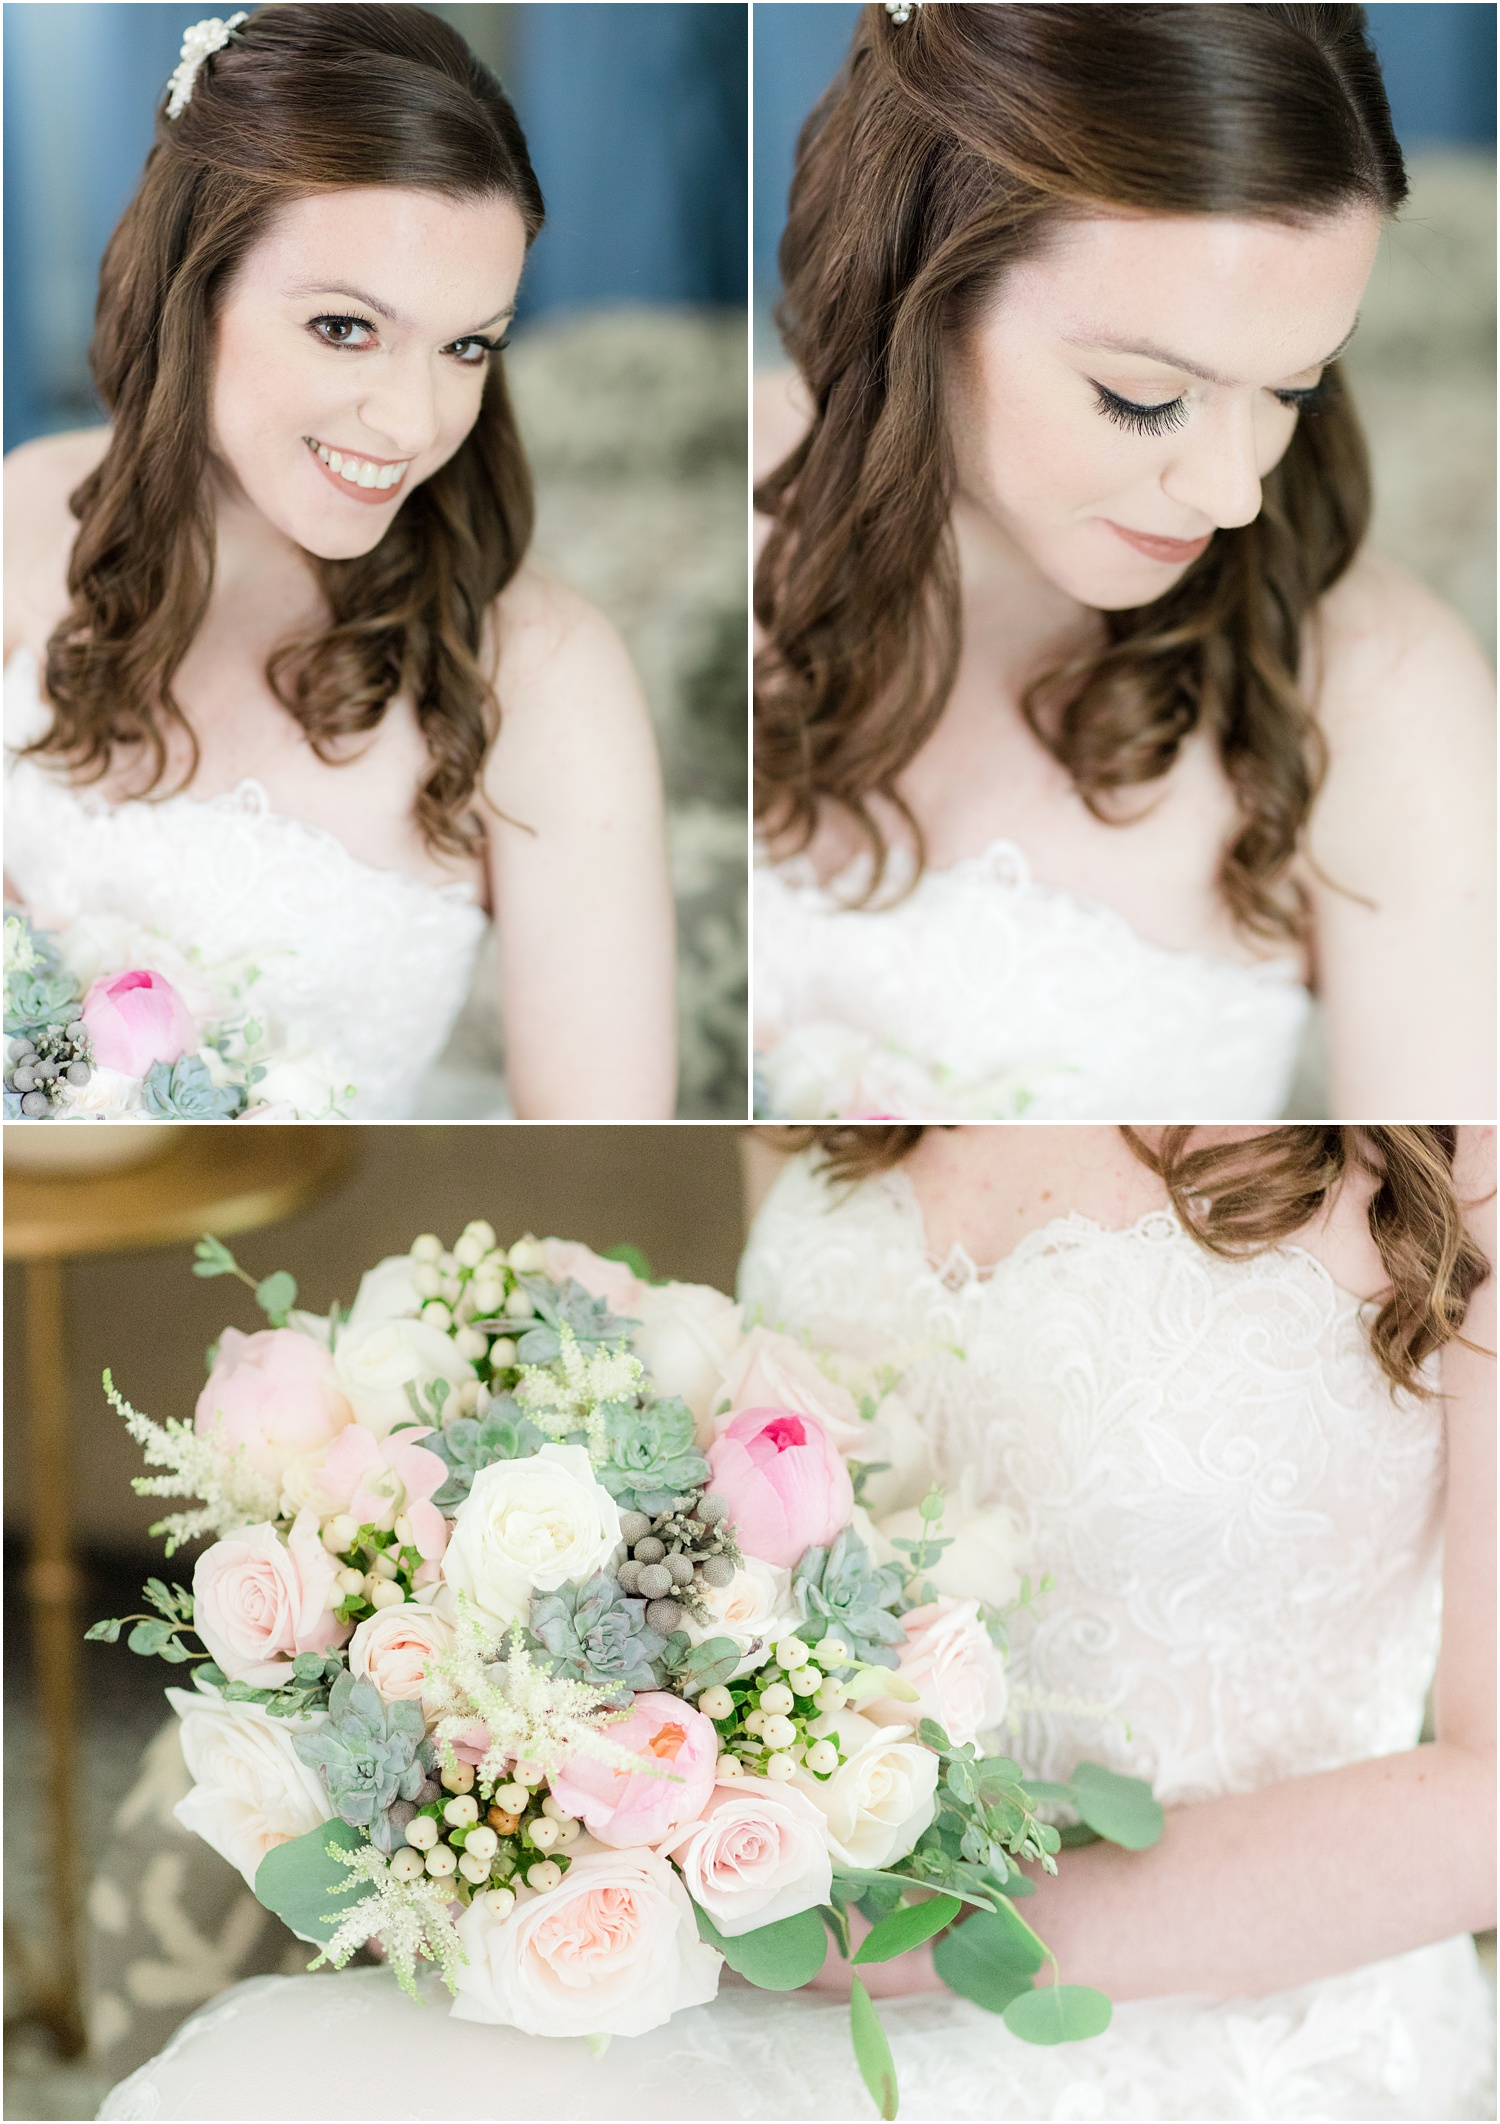 Bridal portraits at The Olde Mill Inn in Basking Ridge, NJ.